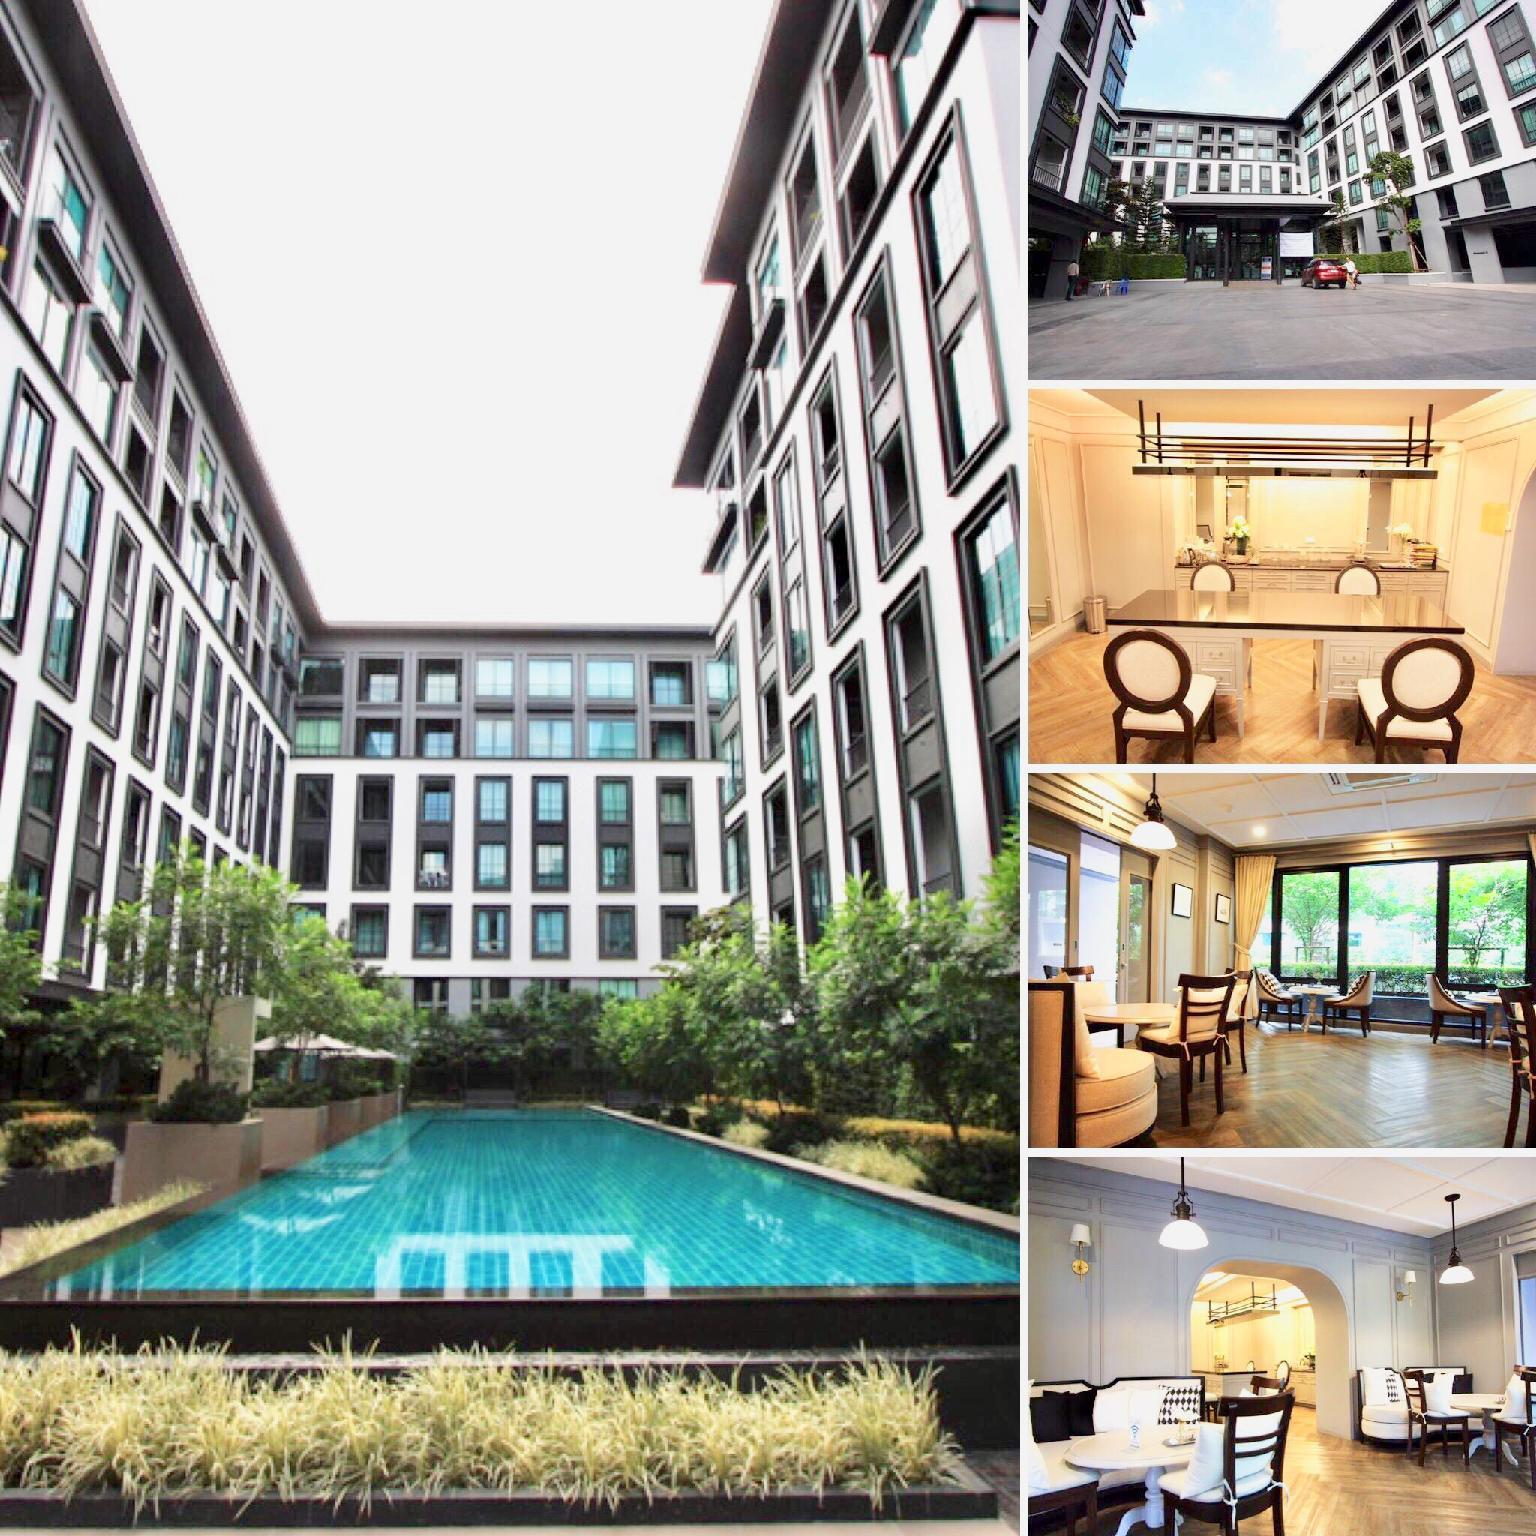 The reserve private condominium,The reserve private condominium